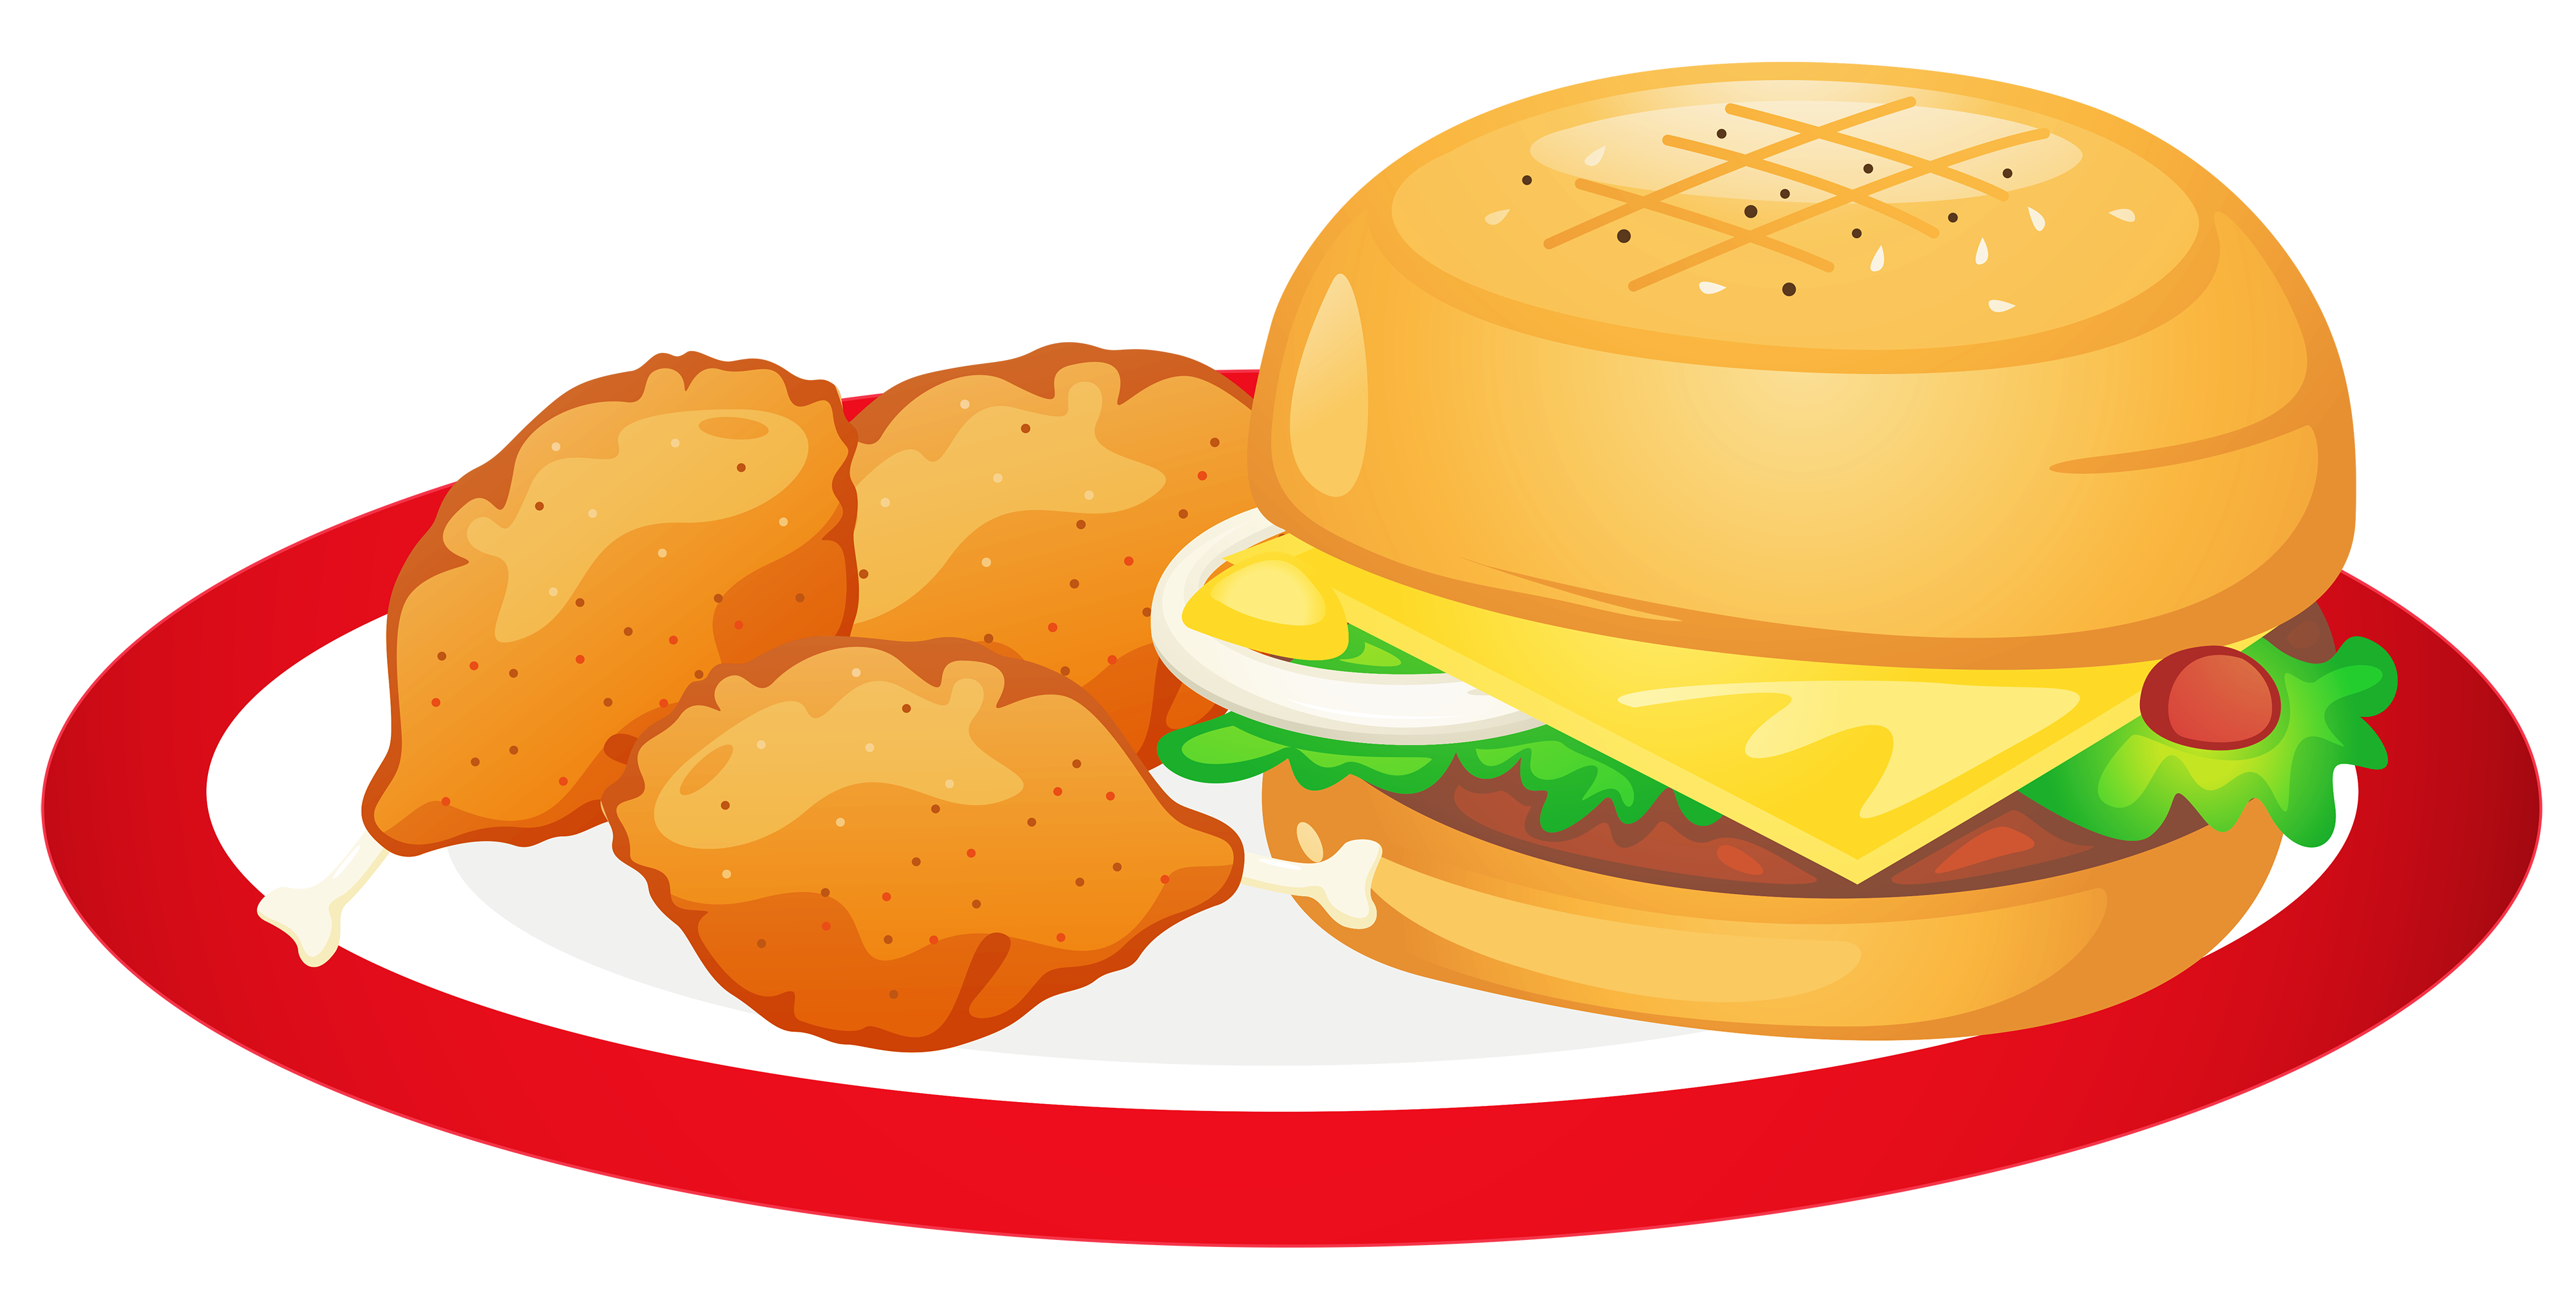 Food clip art png. Collection of plate